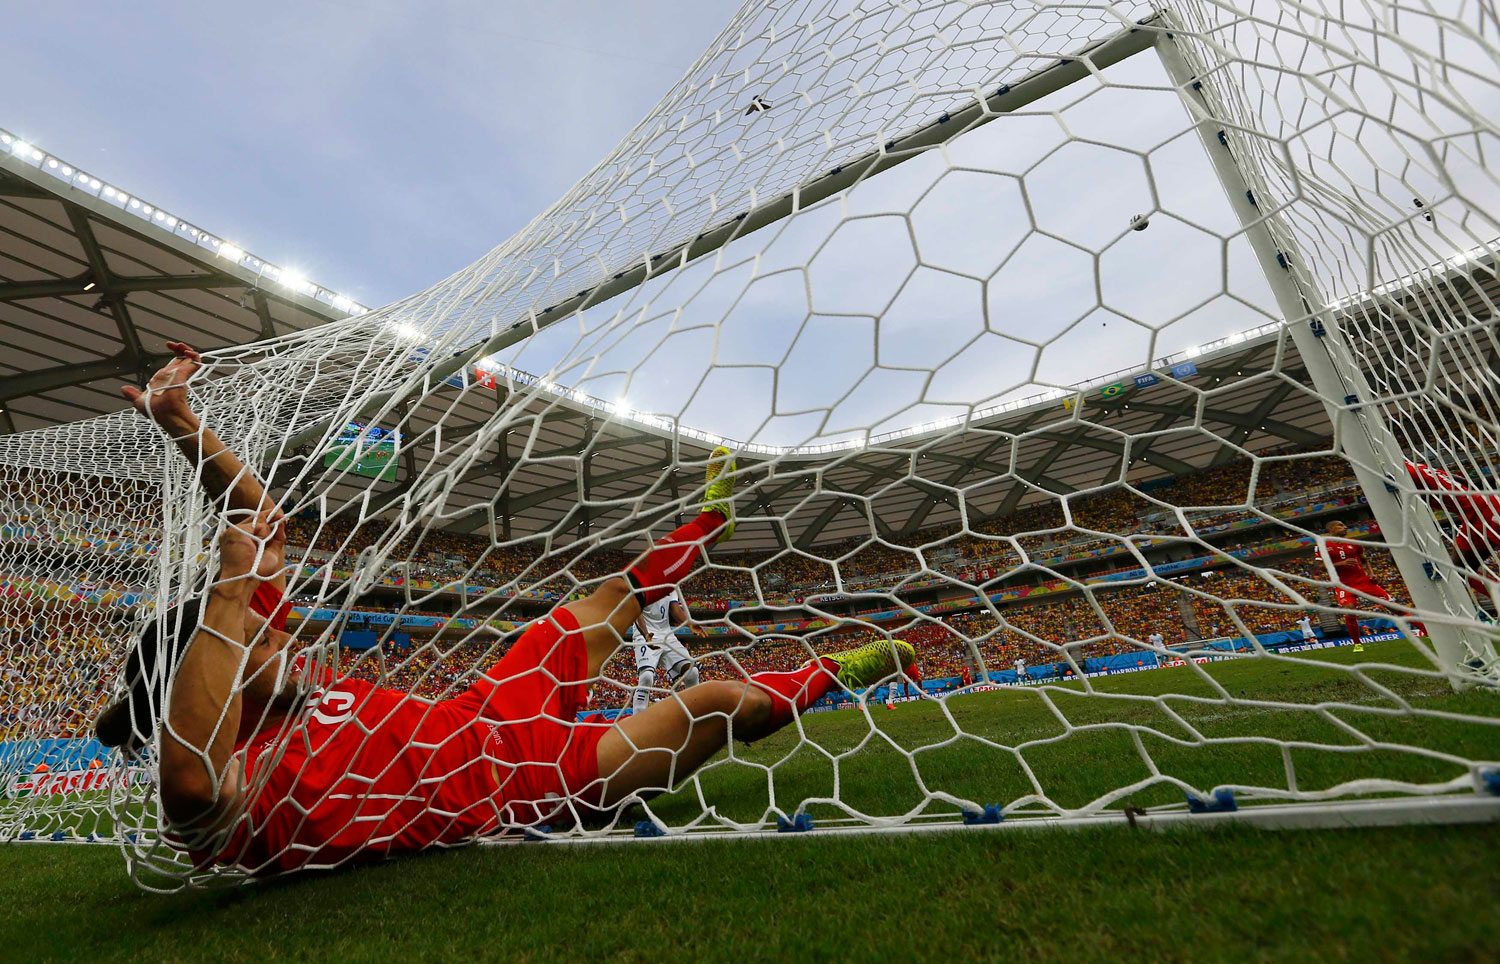 Switzerland's Ricardo Rodriguez falls into the goal net after making a save during their match against Honduras at the Amazonia arena in Manaus, Brazil on June 25, 2014.